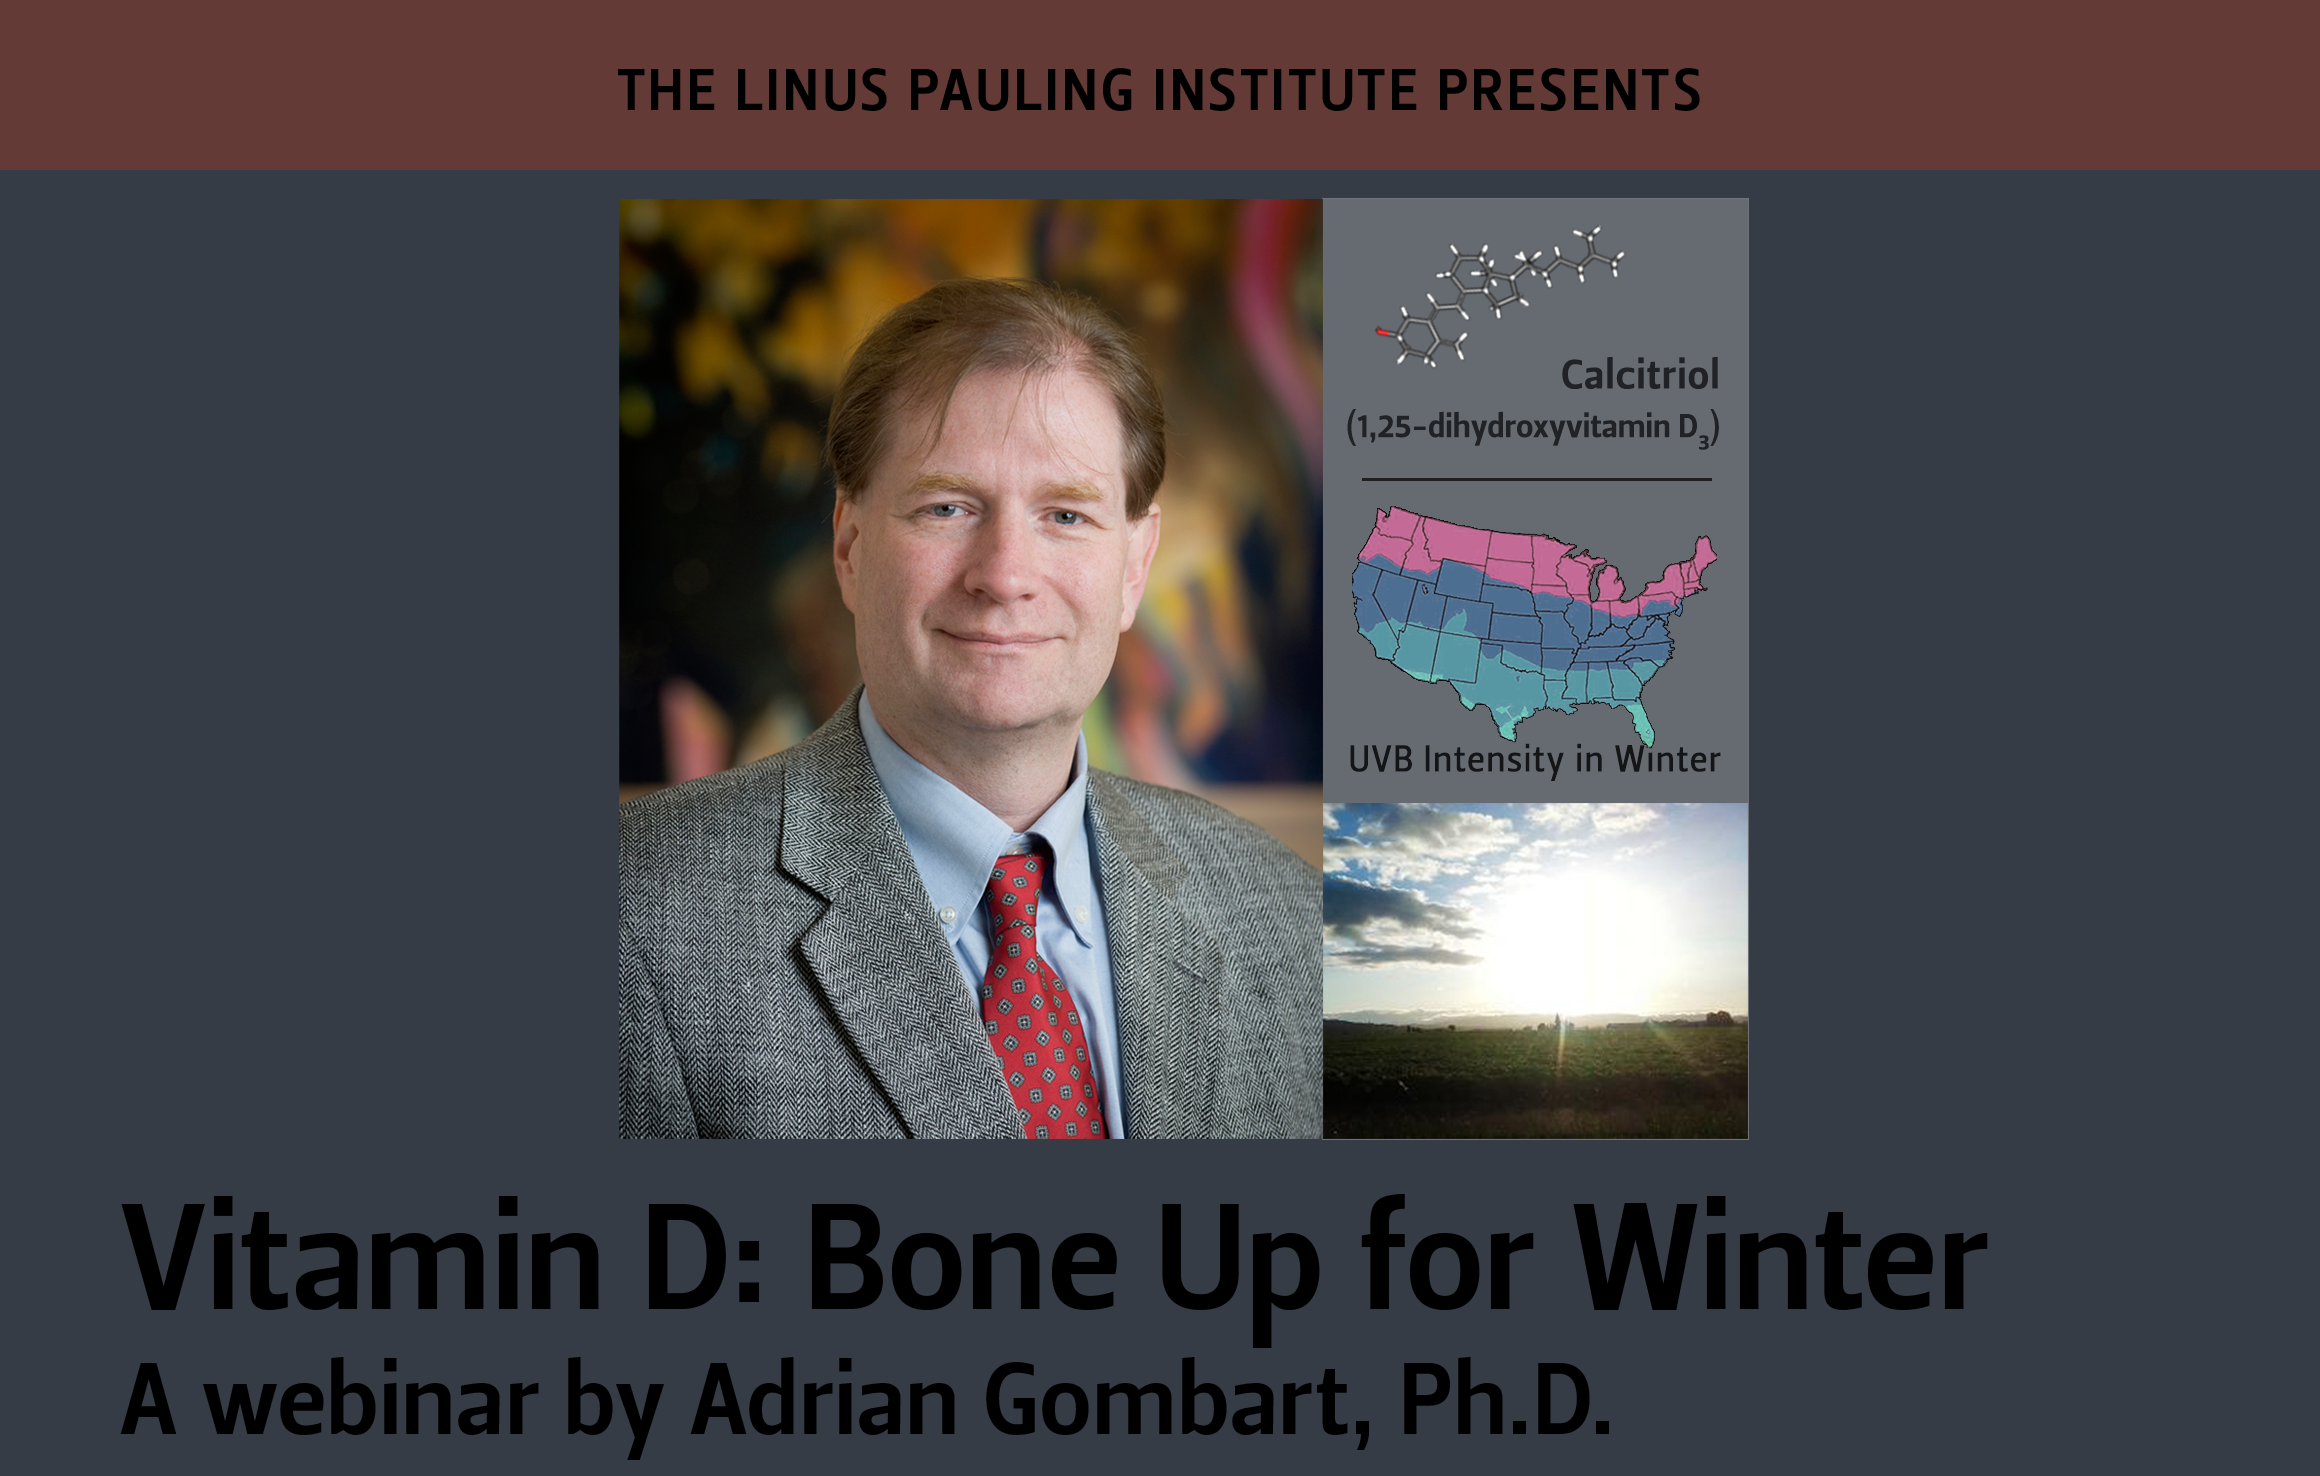 Vitamin D - Bone Up for Winter Webinar